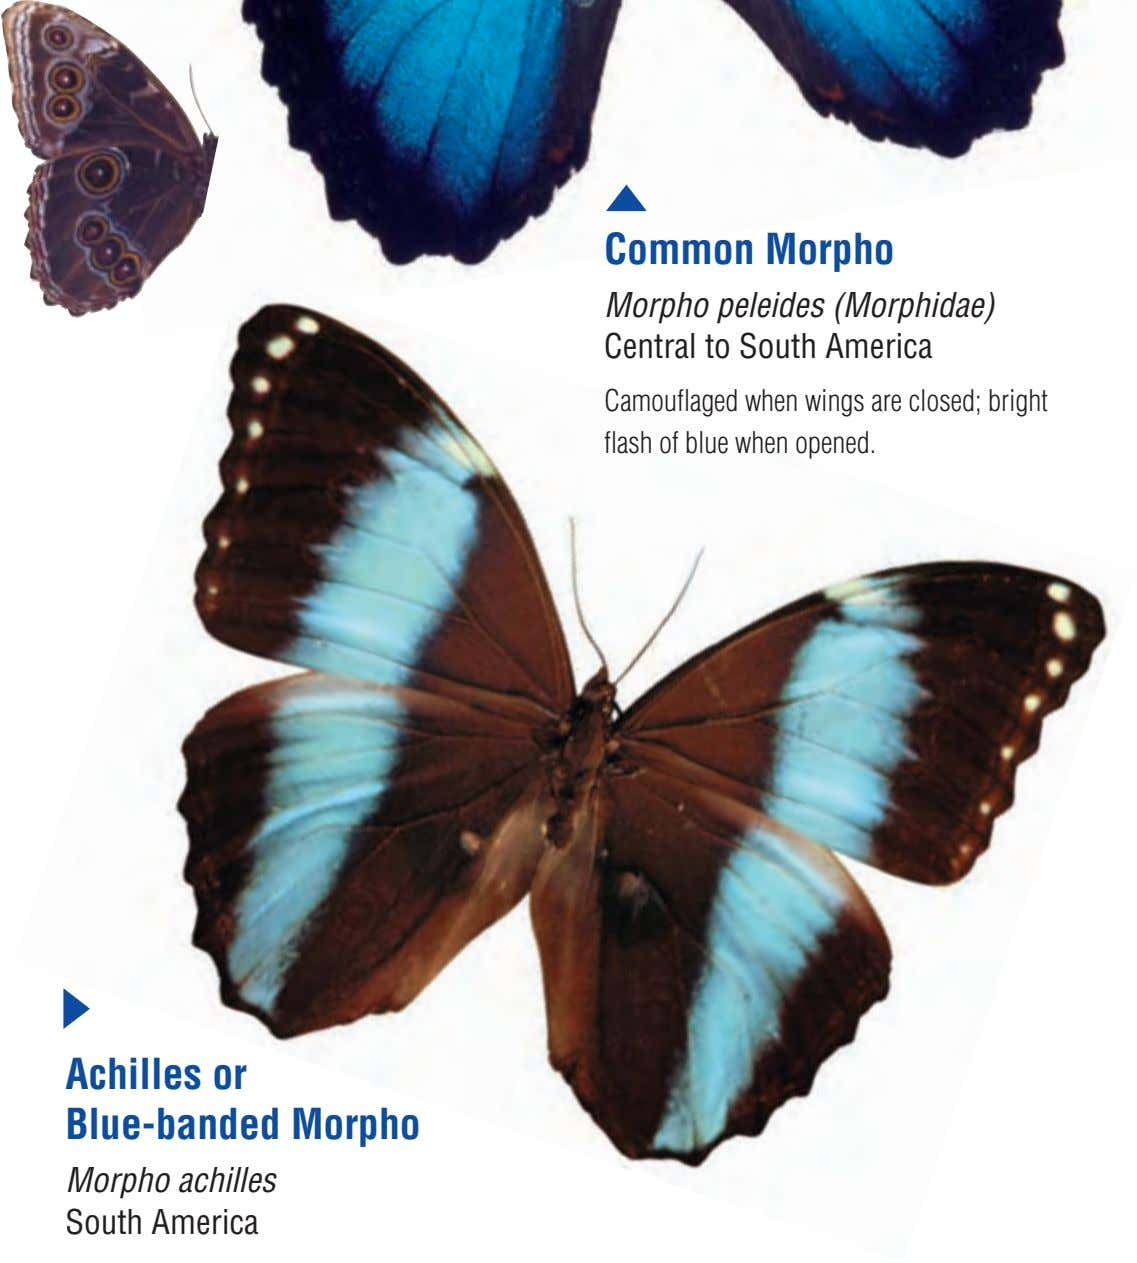 Common Morpho Morpho peleides (Morphidae) Central to South America Camouflaged when wings are closed; bright